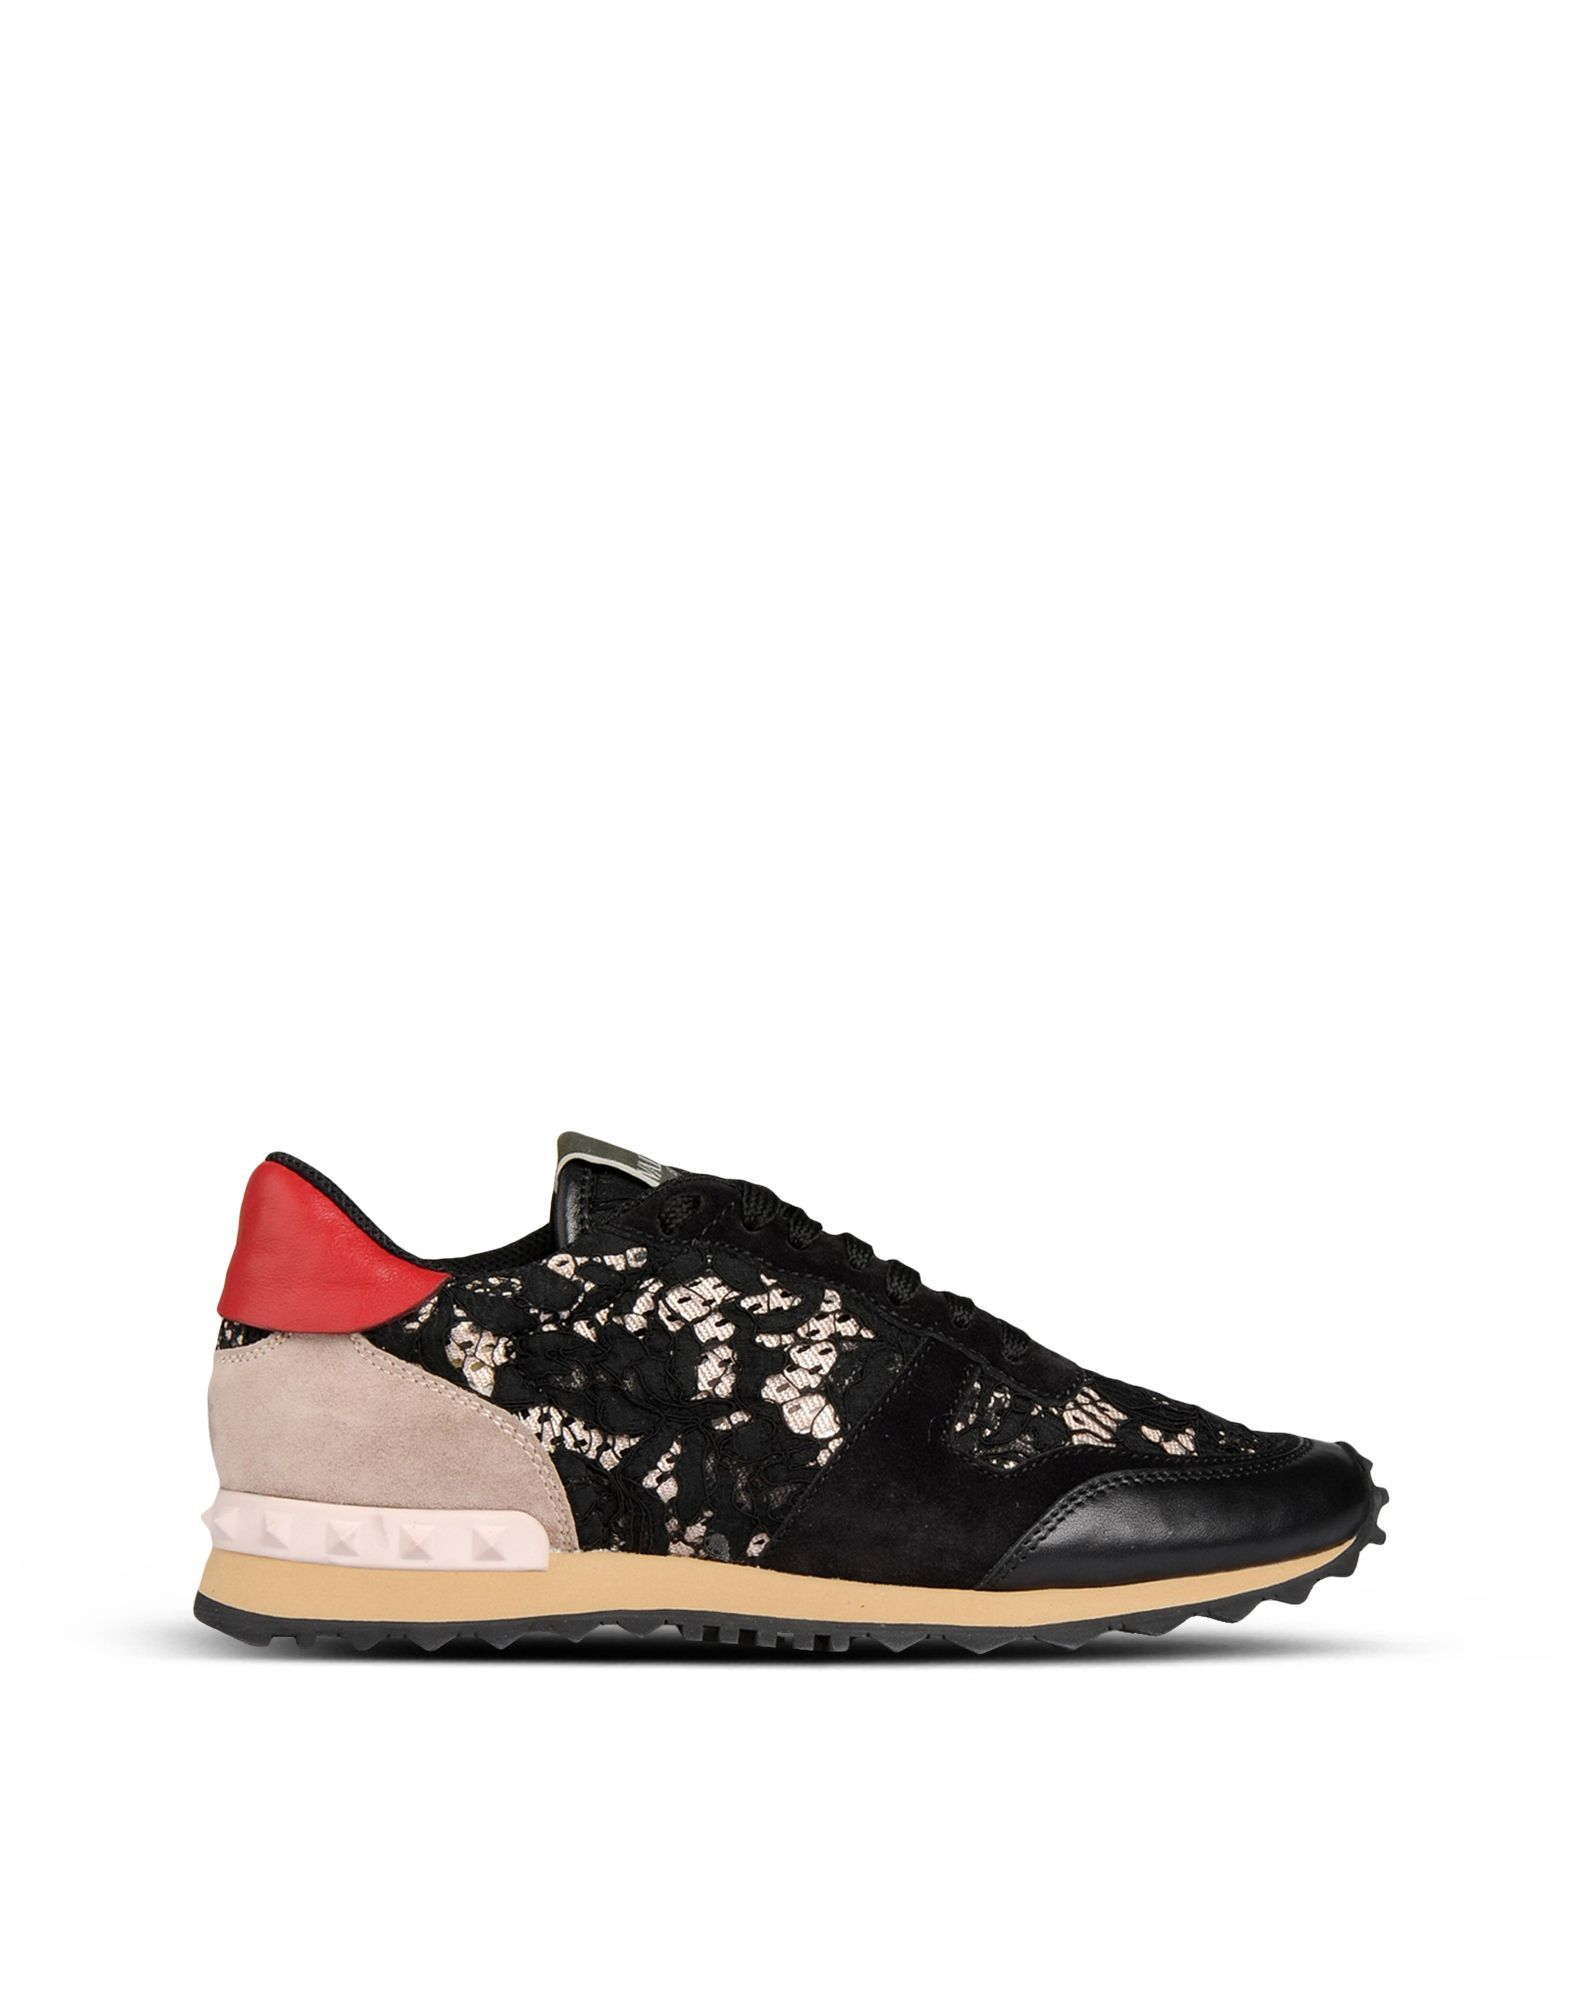 c9159a6399281f VALENTINO GARAVANI - Sneaker Women - Shoes Women on Valentino Online  Boutique